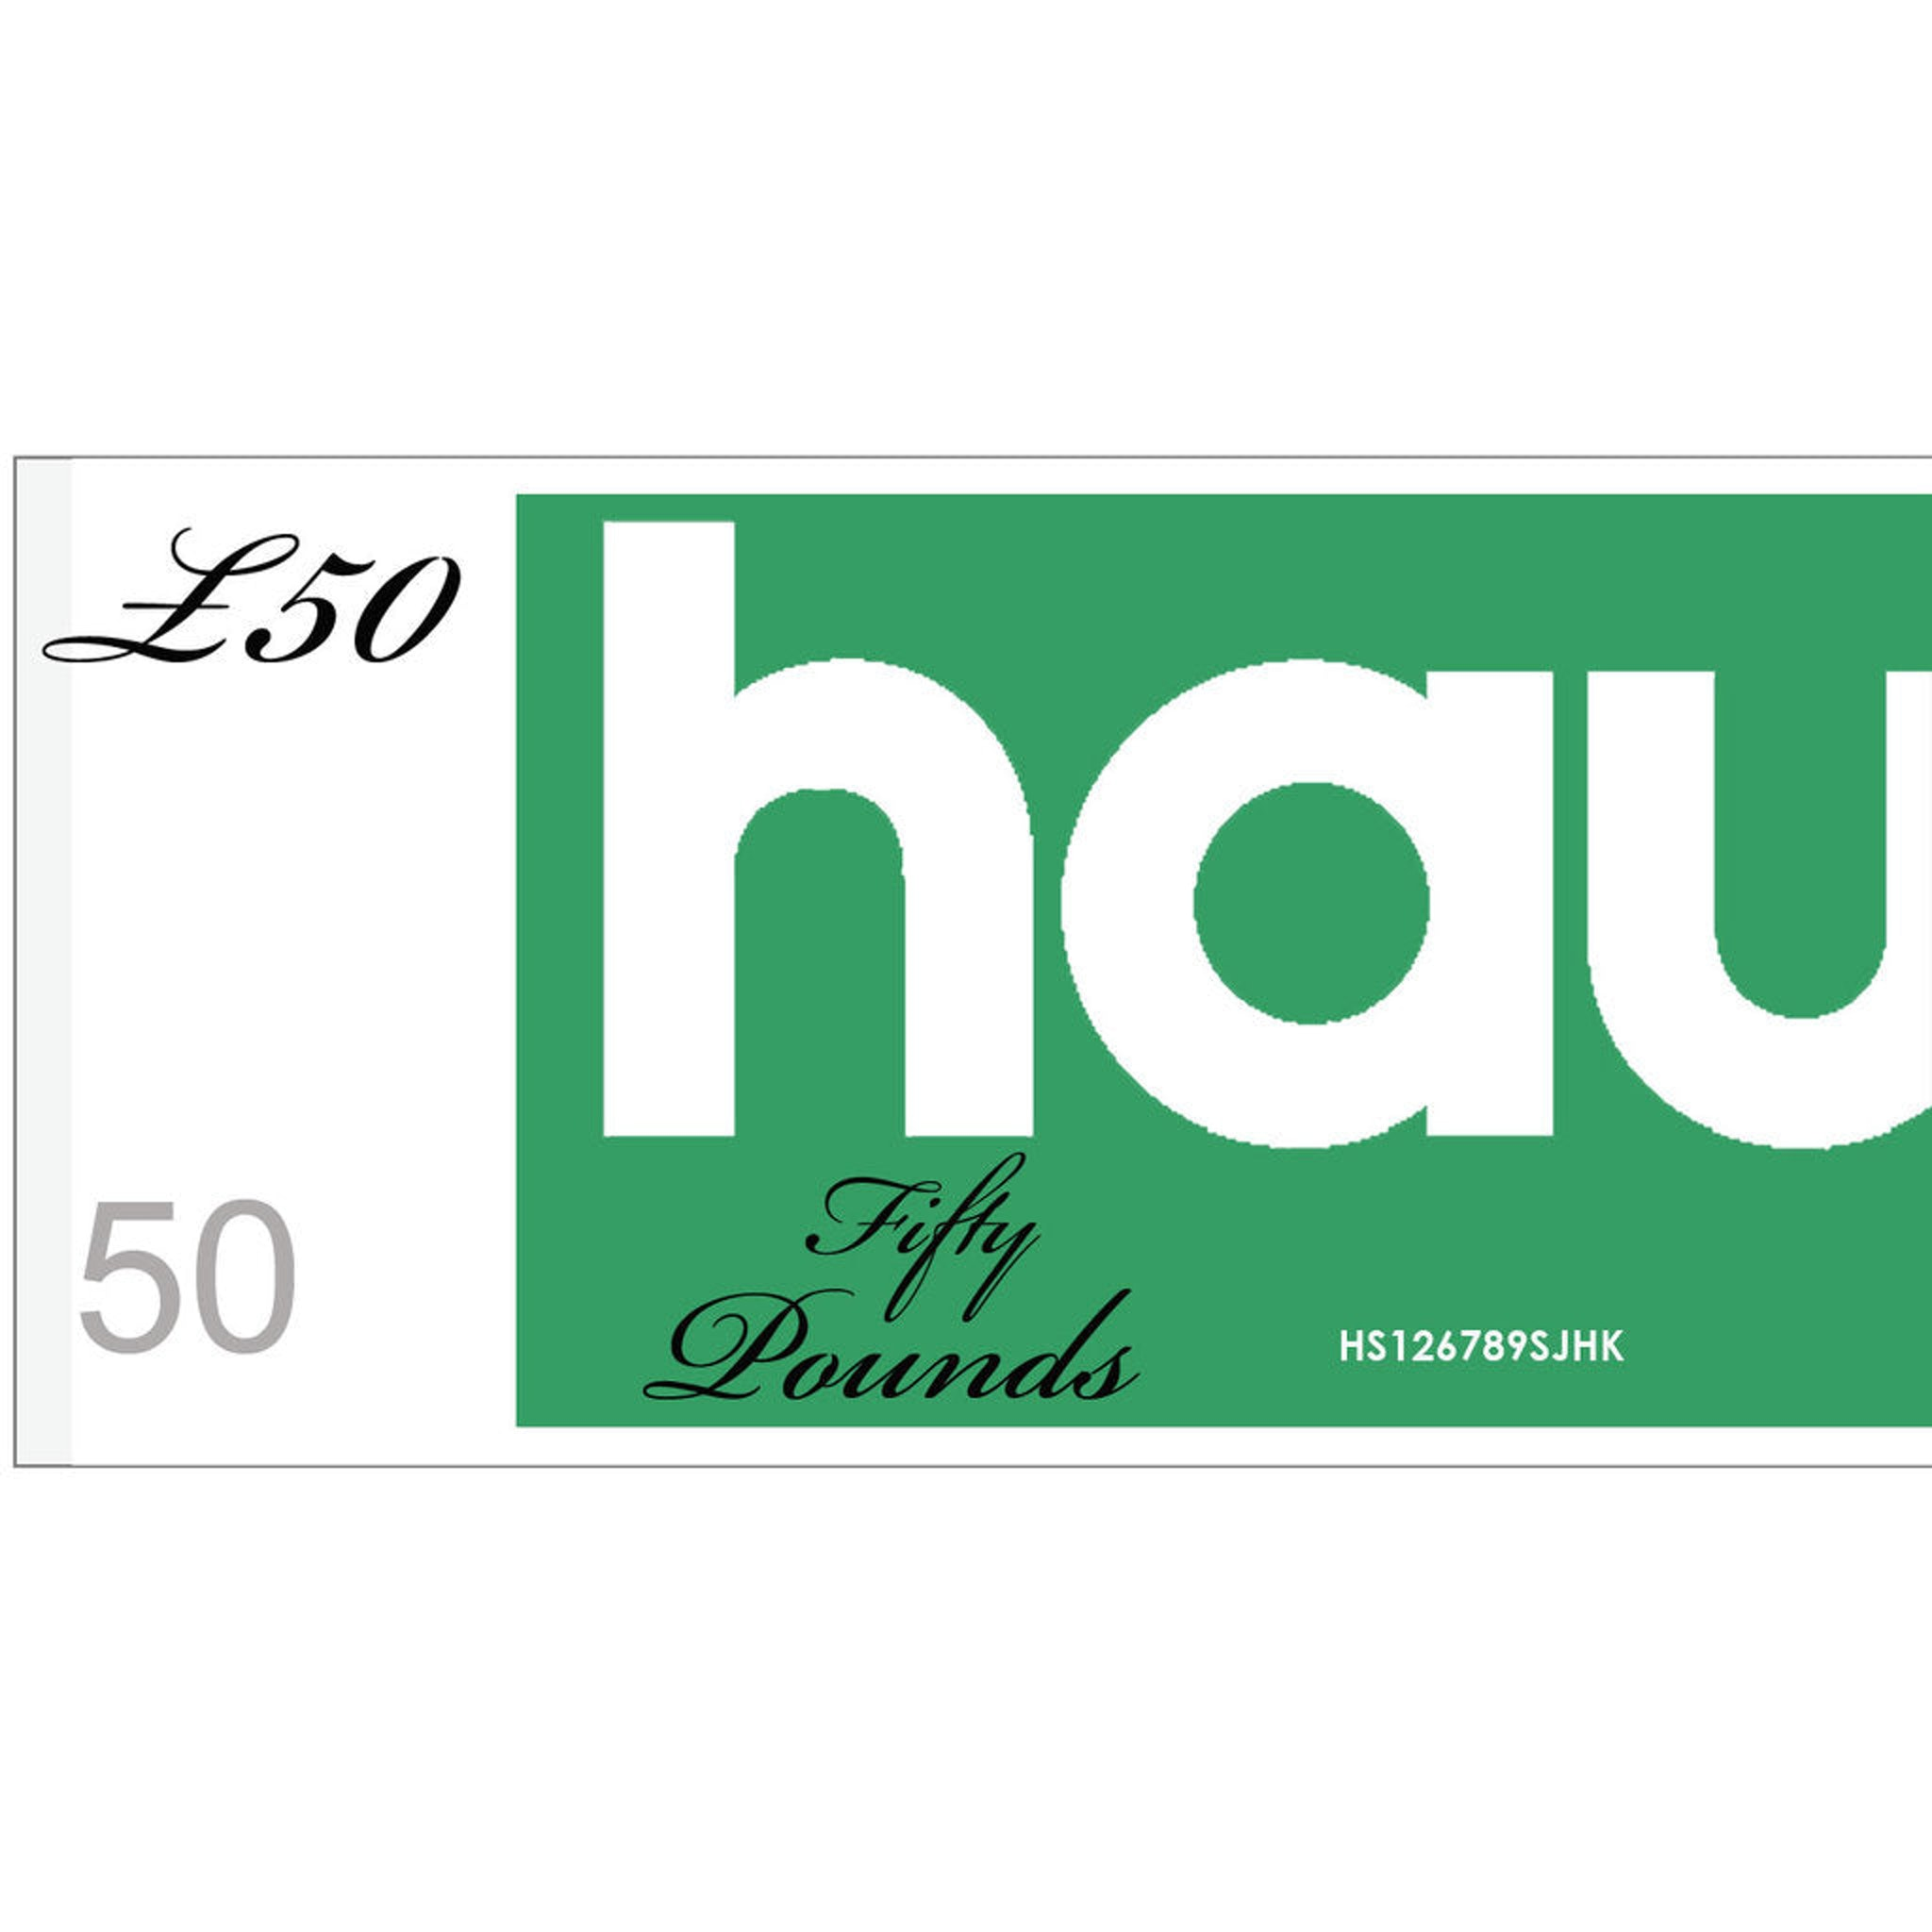 HAUS GIFT VOUCHER - VALUE £50 - for Kerrin and Graham